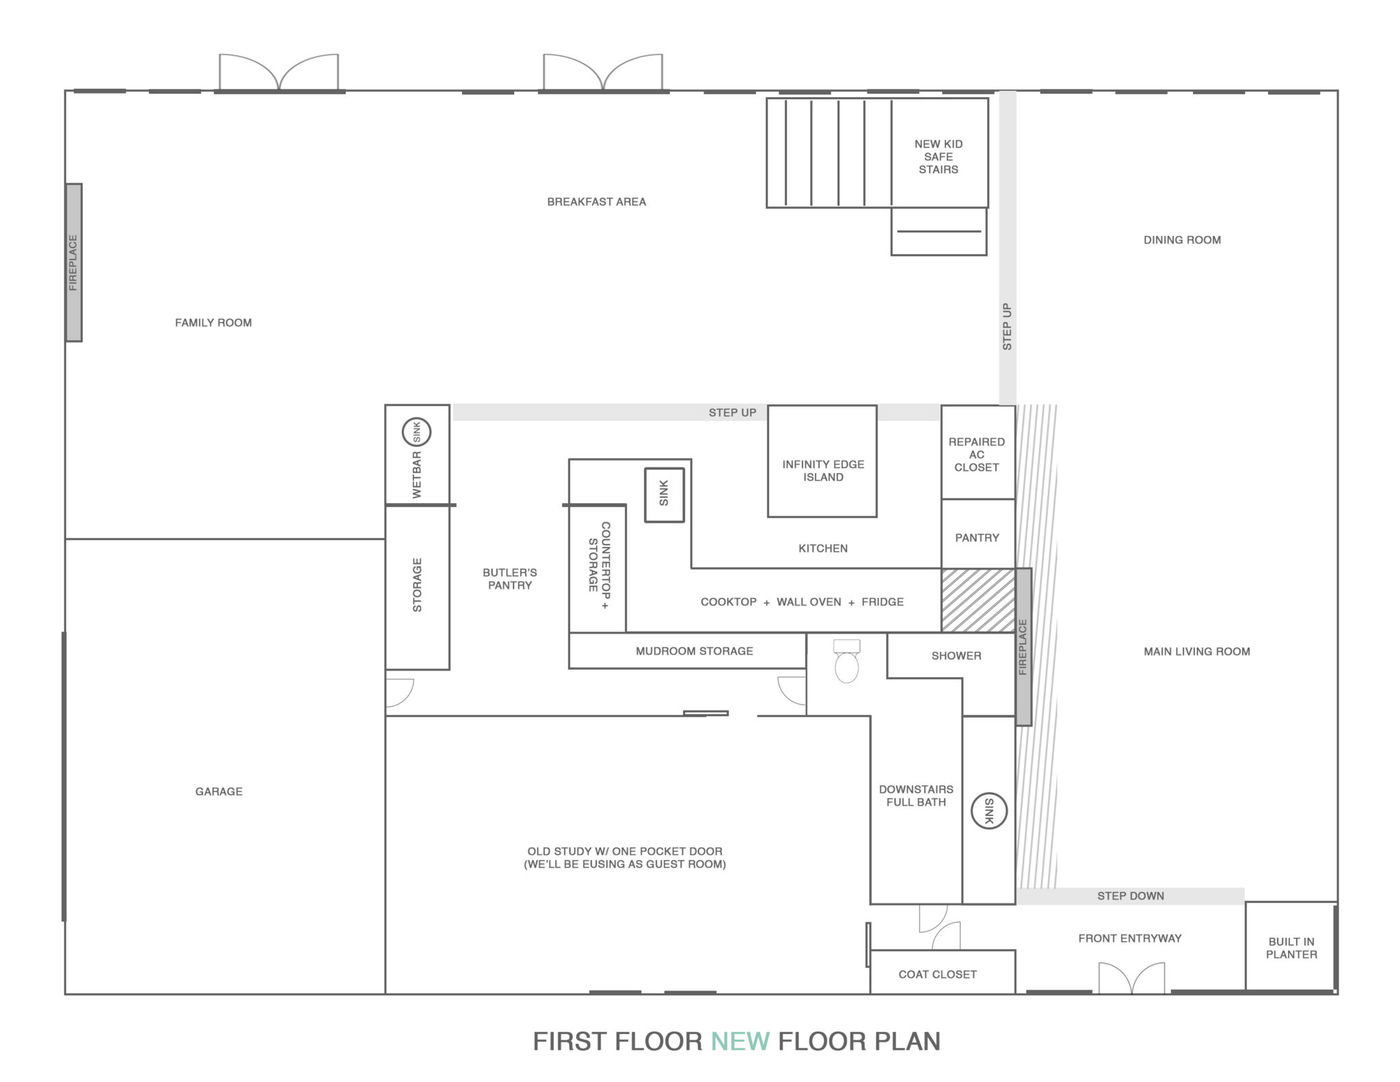 our new final plans for the new house first floor! Sugar & Cloth Casa: Renovation Update + Floor Plans for First Floor! by top Houston lifestyle blogger Ashley Rose of Sugar & Cloth #homedecor #interiors #design #interiordesign #floorplans #renovation #ideas